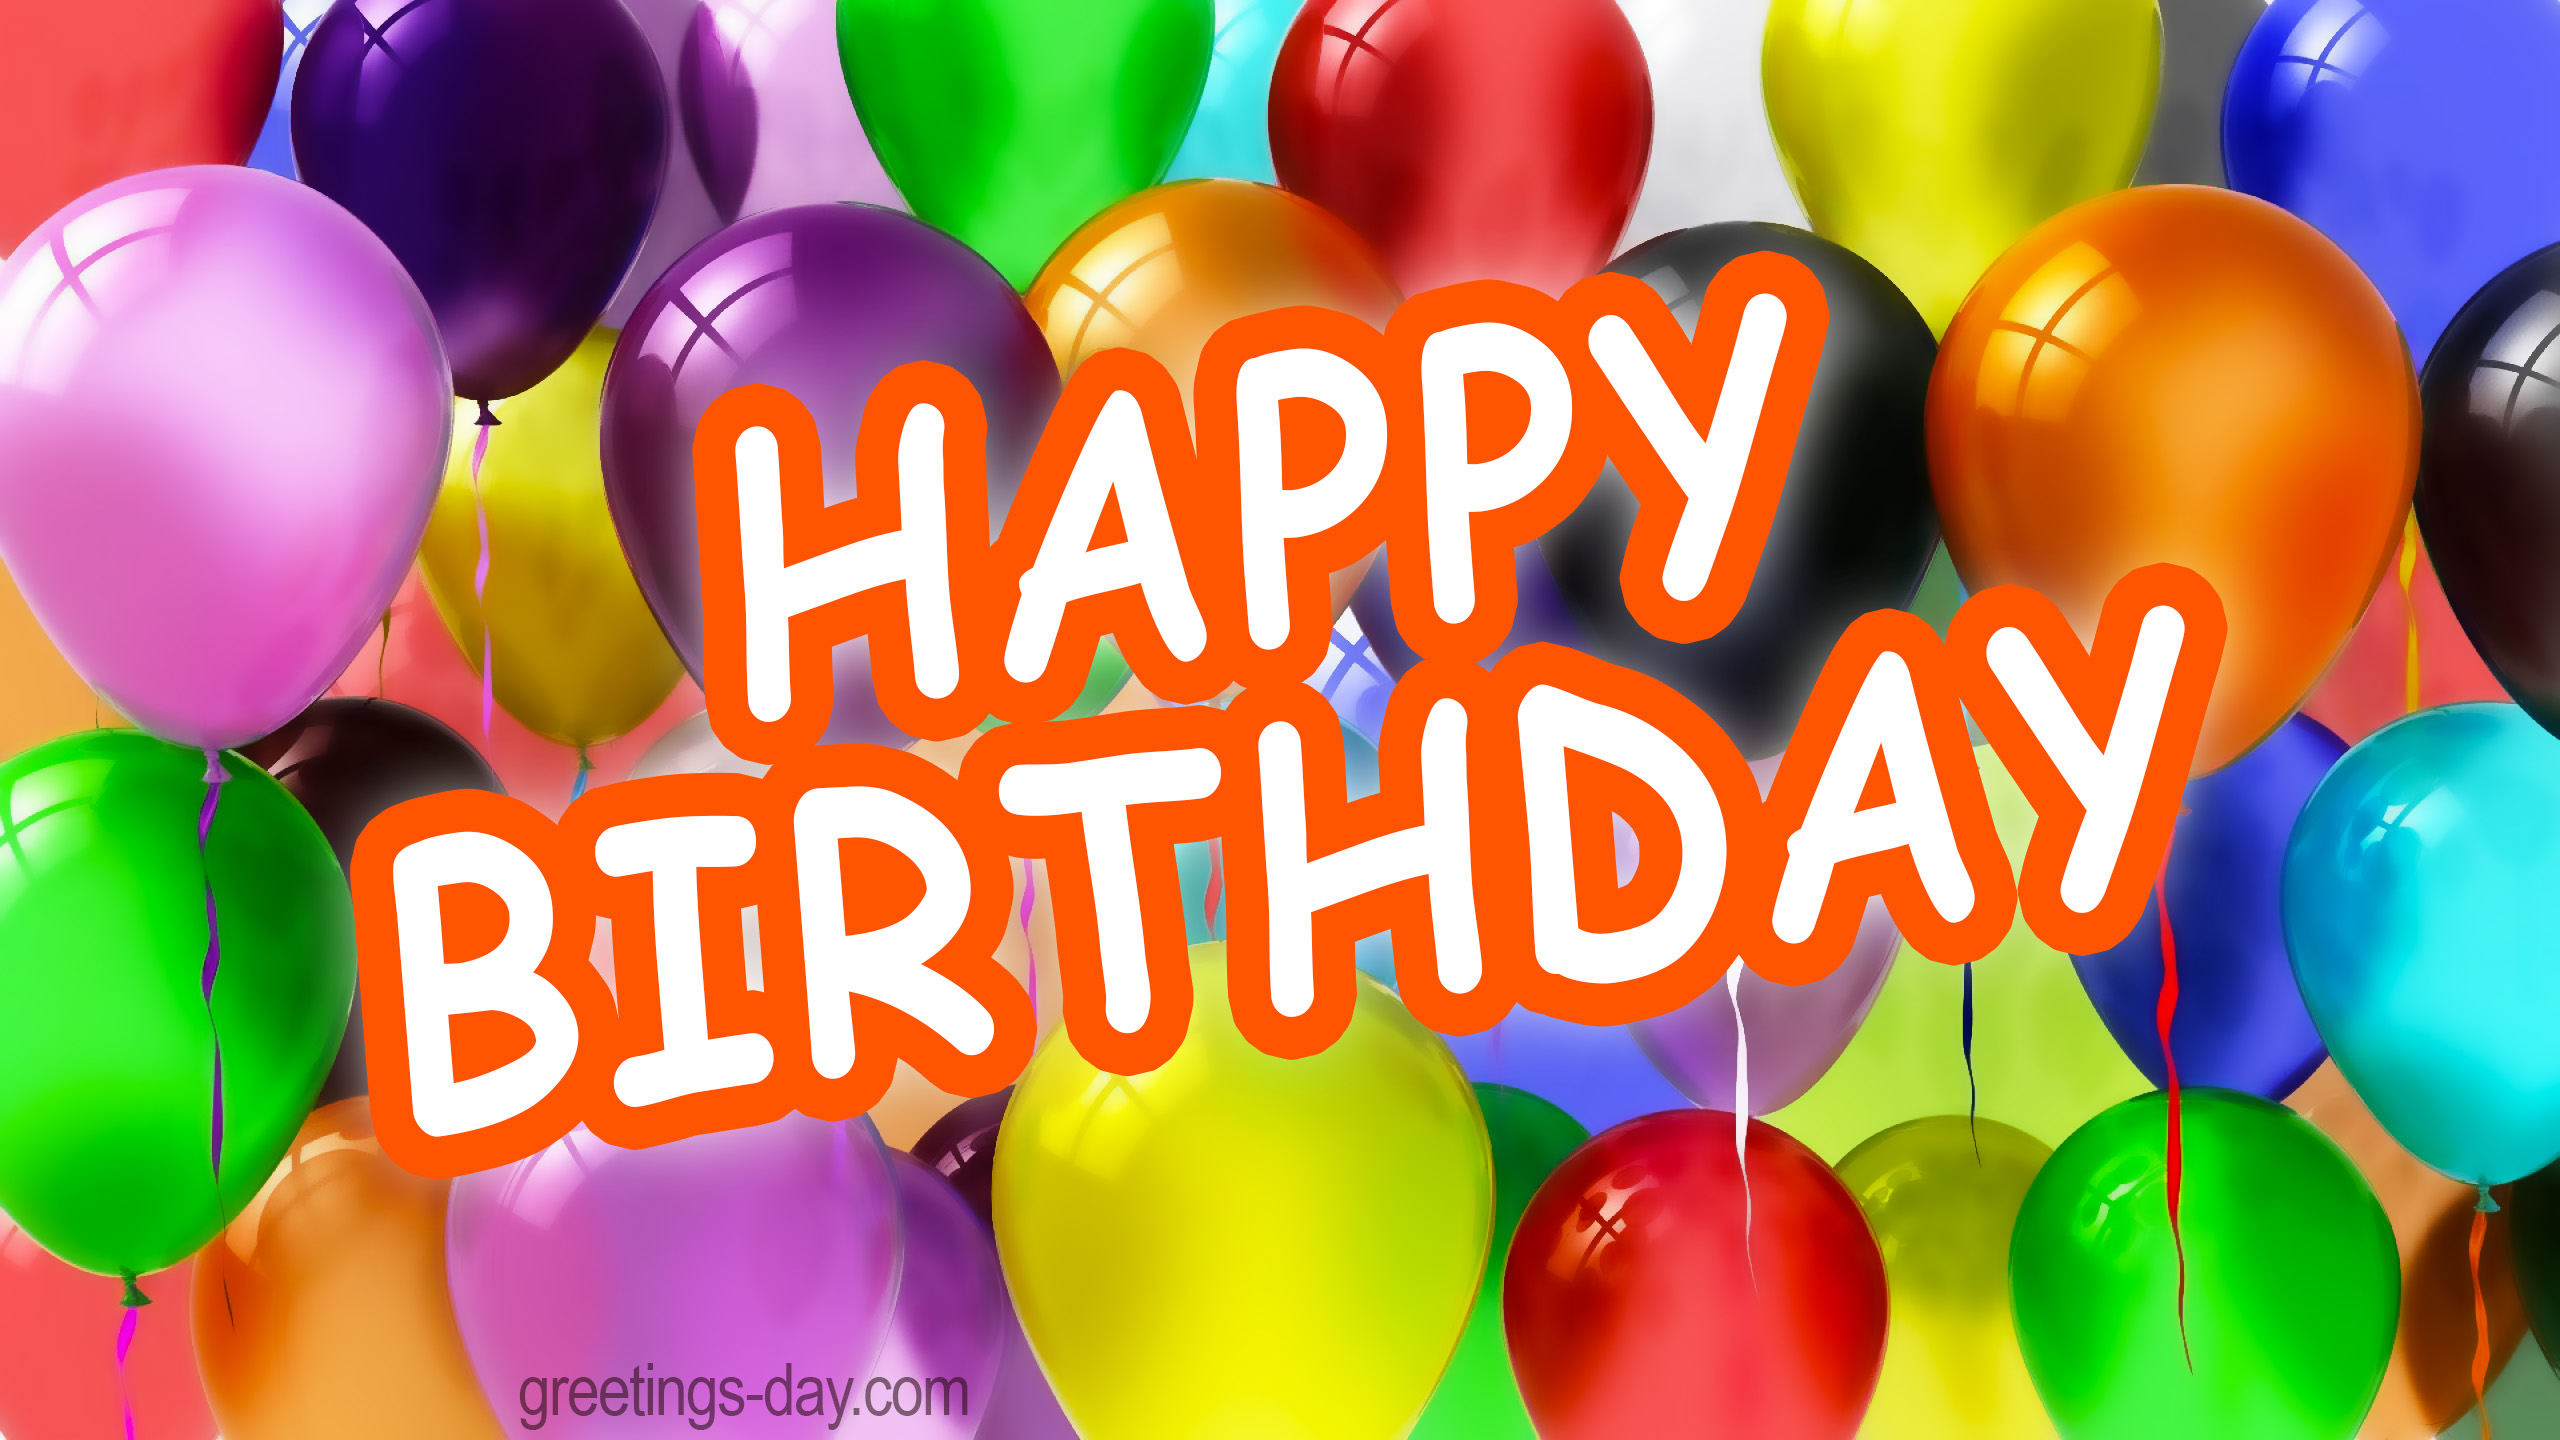 Happy Birthday –  Best Free Images & Animated Gifs.